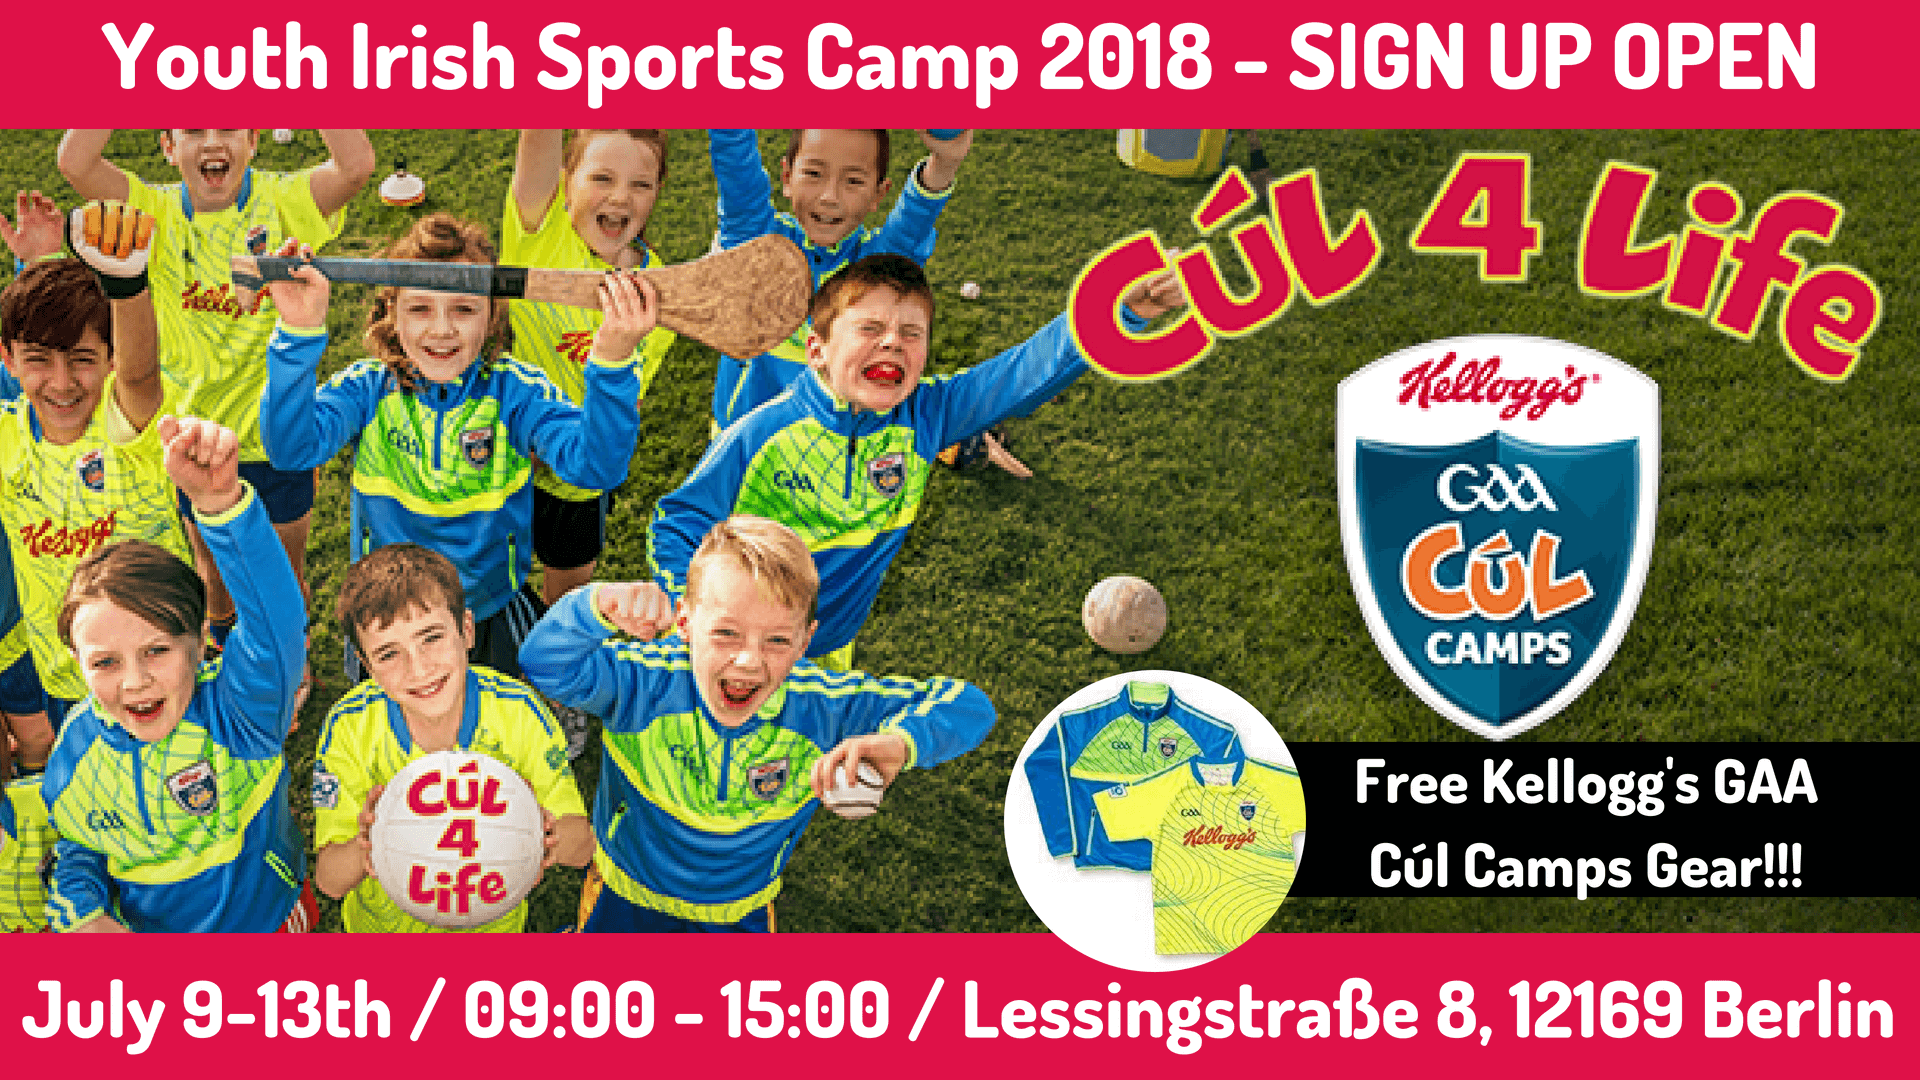 Youth Irish Sports Camp compressed (1).png